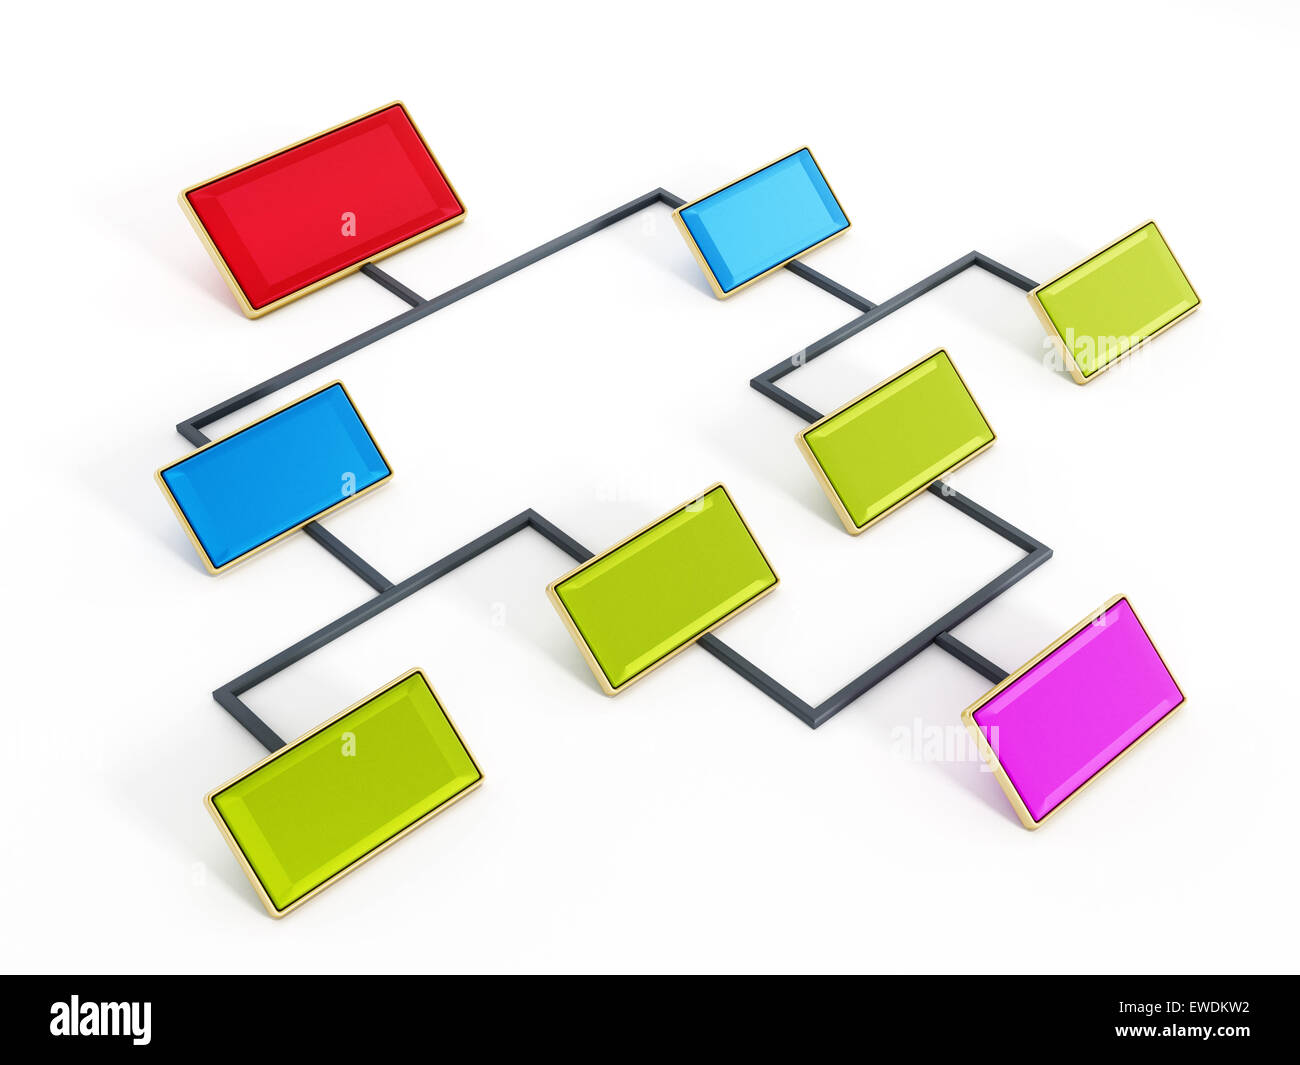 Flow chart in red blue and green color tones isolated on white flow chart in red blue and green color tones isolated on white background geenschuldenfo Image collections